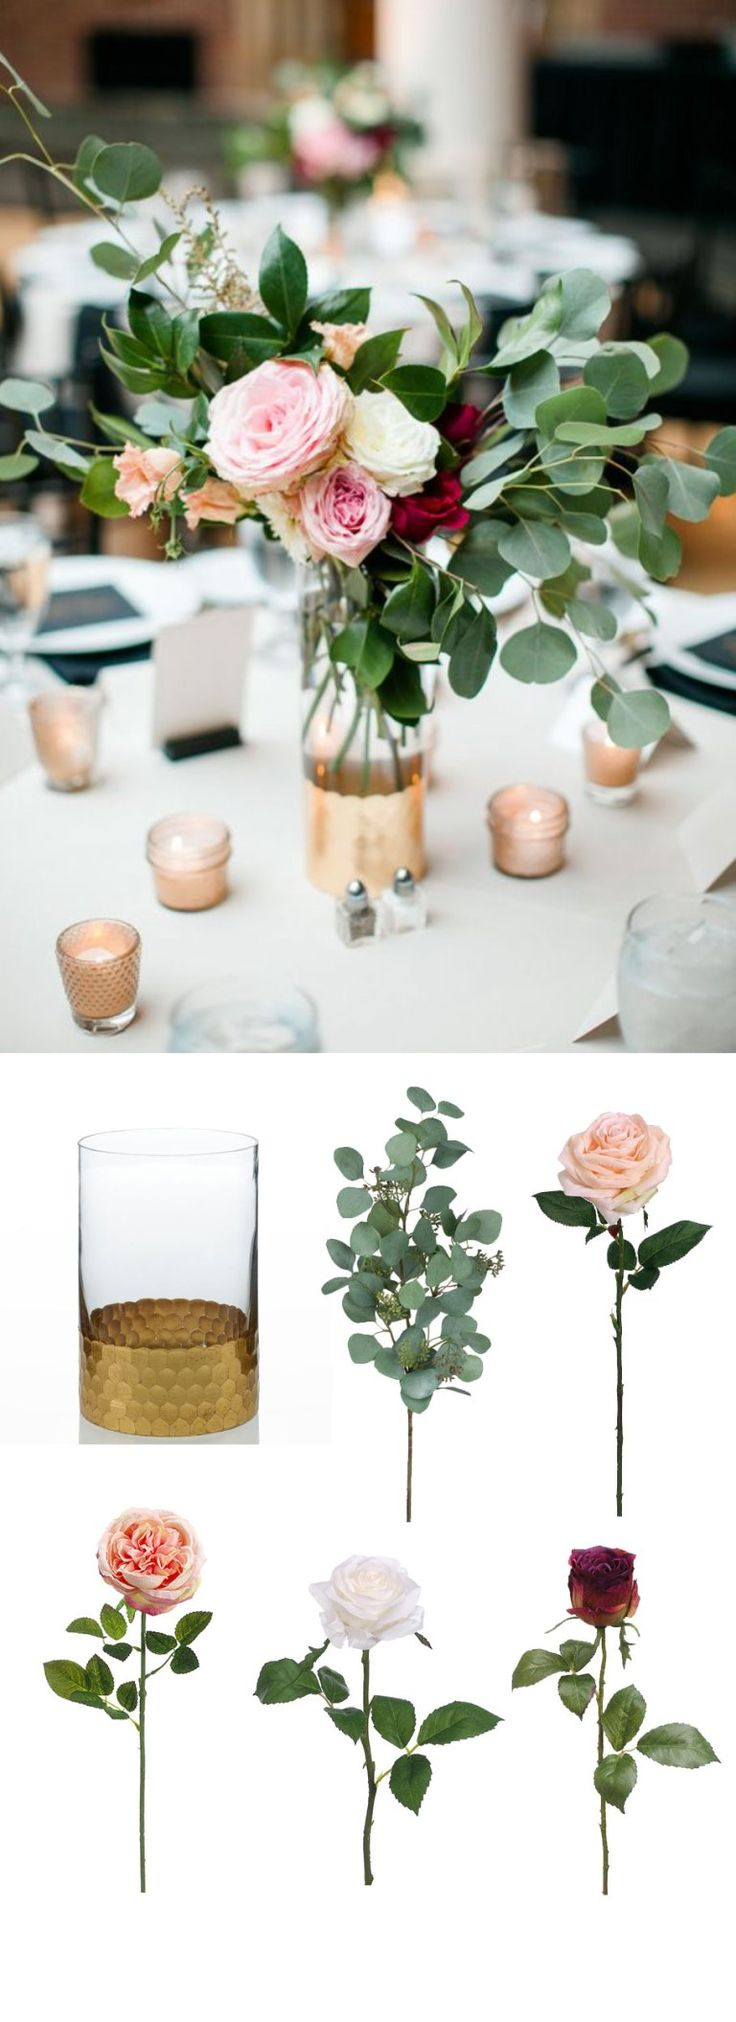 58 best Flowers images on Pinterest   Wedding ideas, Weddings and ...